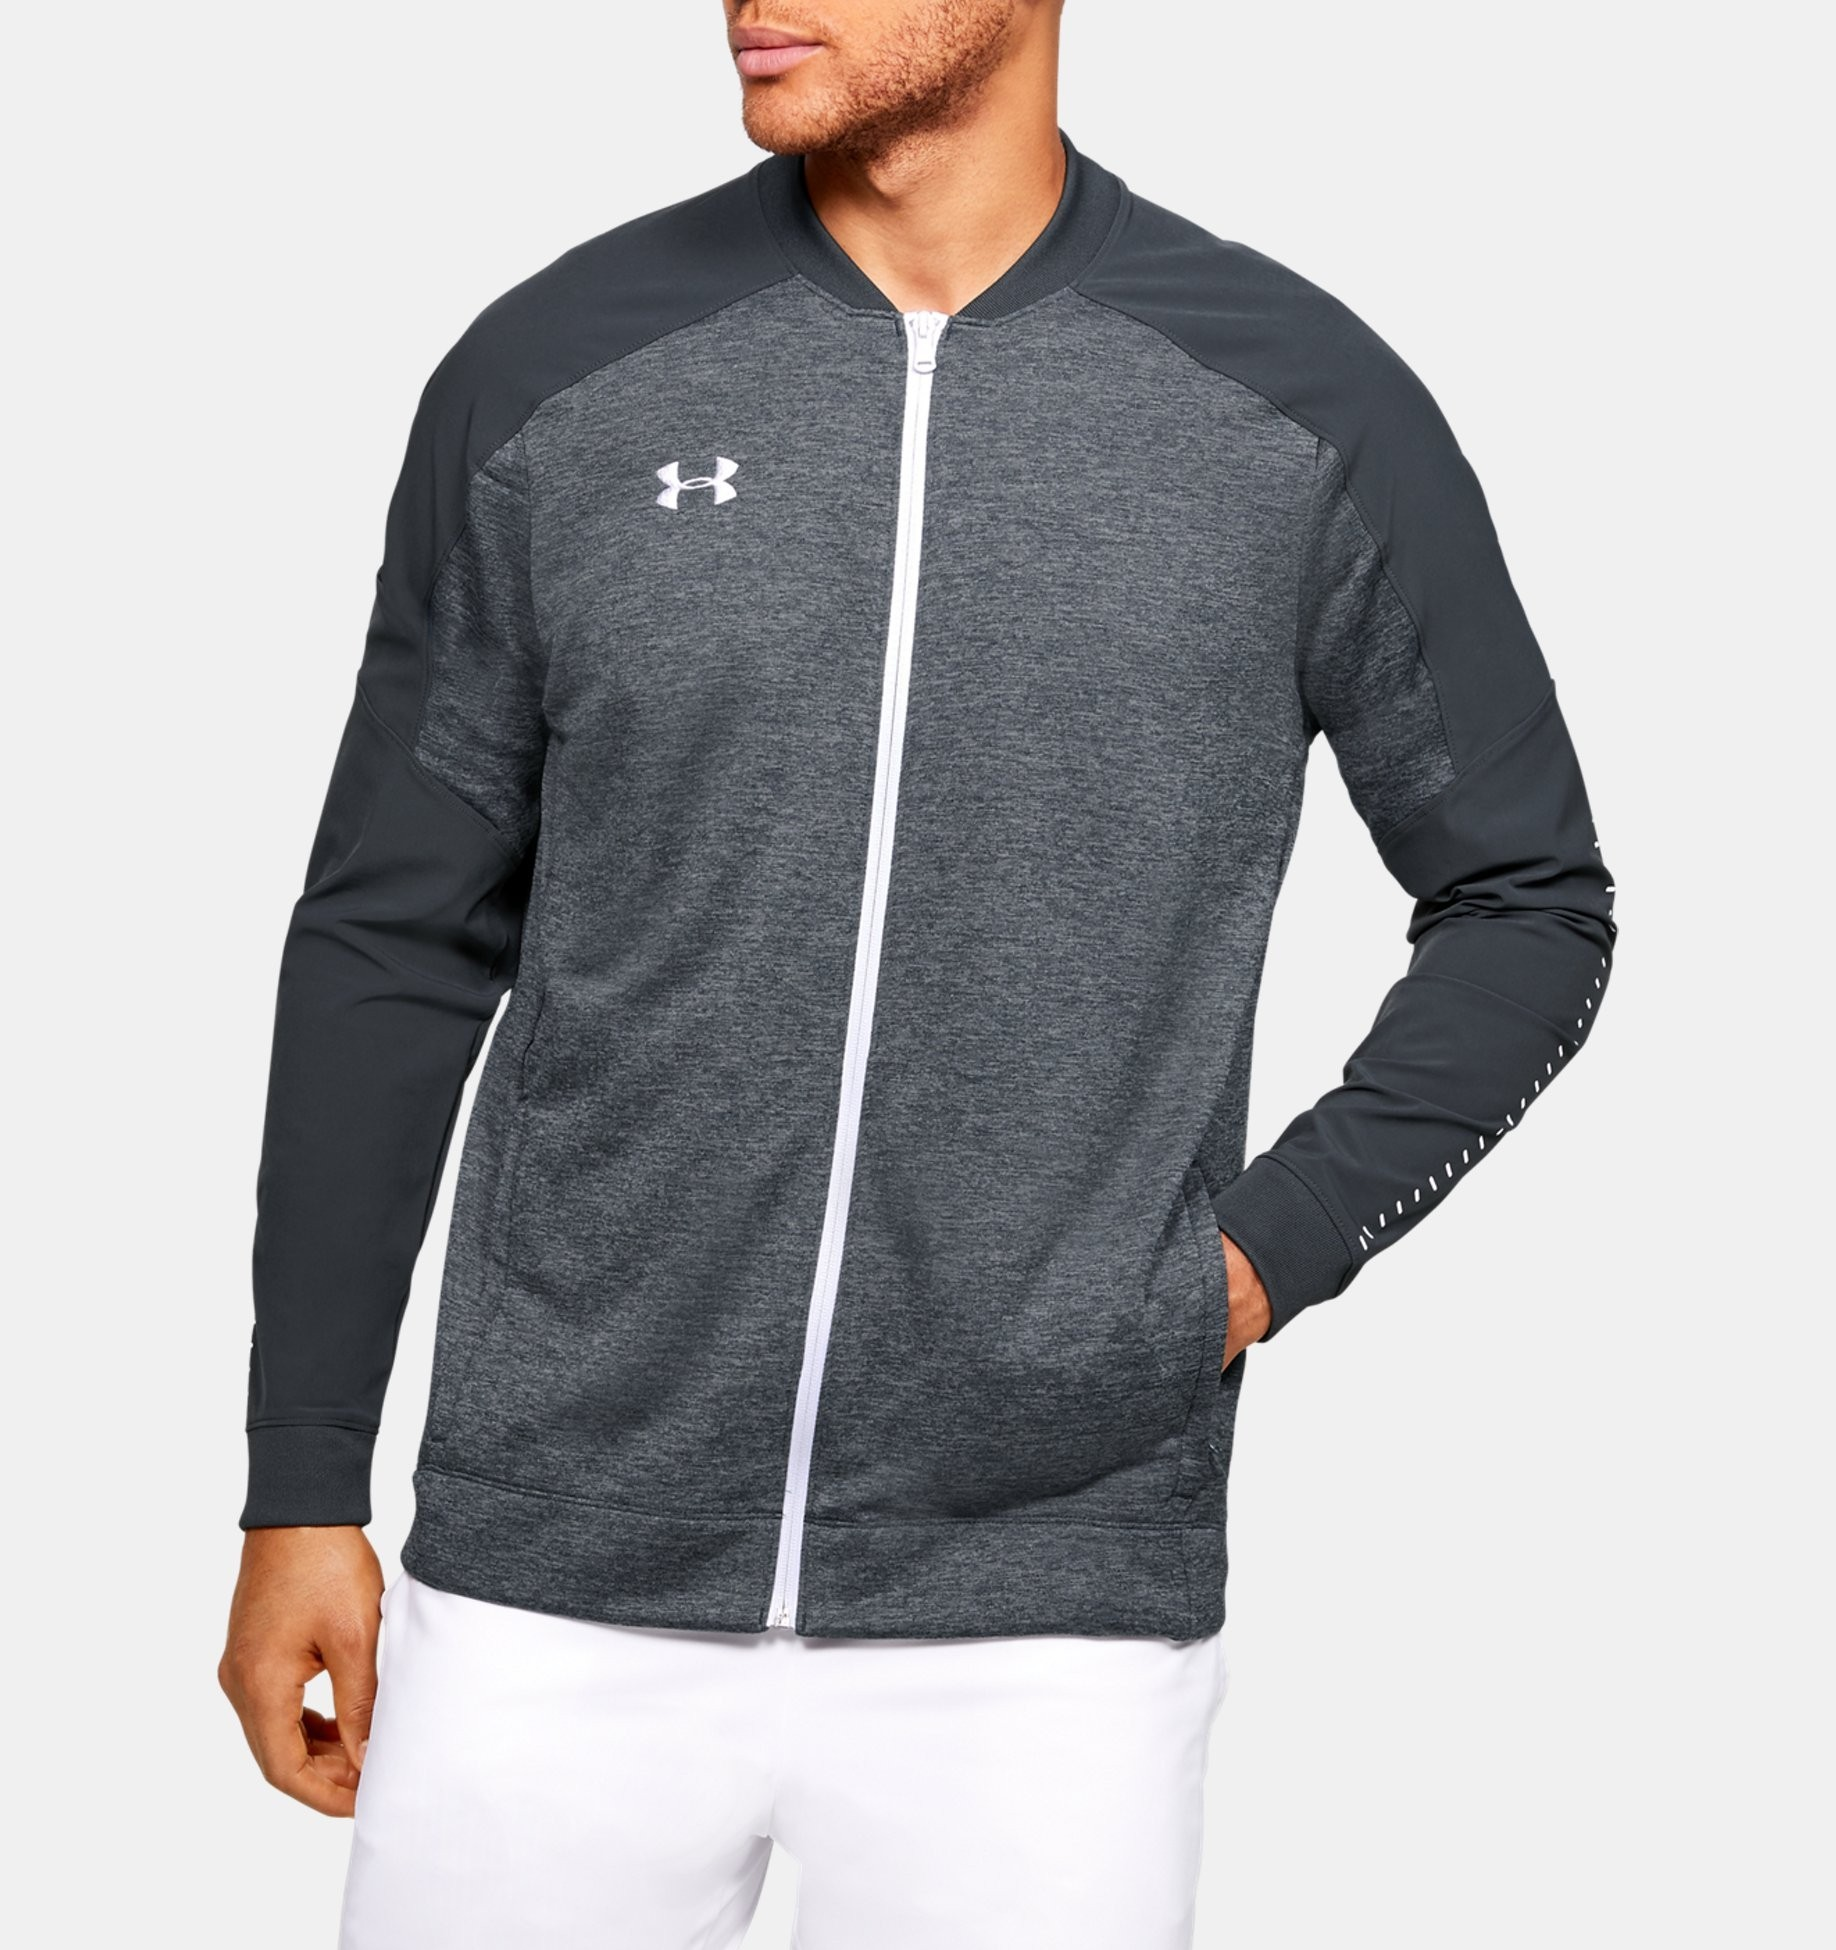 3 Pallets of Men's & Women's Athletic Apparel by Under Armour, 2 Ext. Retail $132,095, Carroll, IA